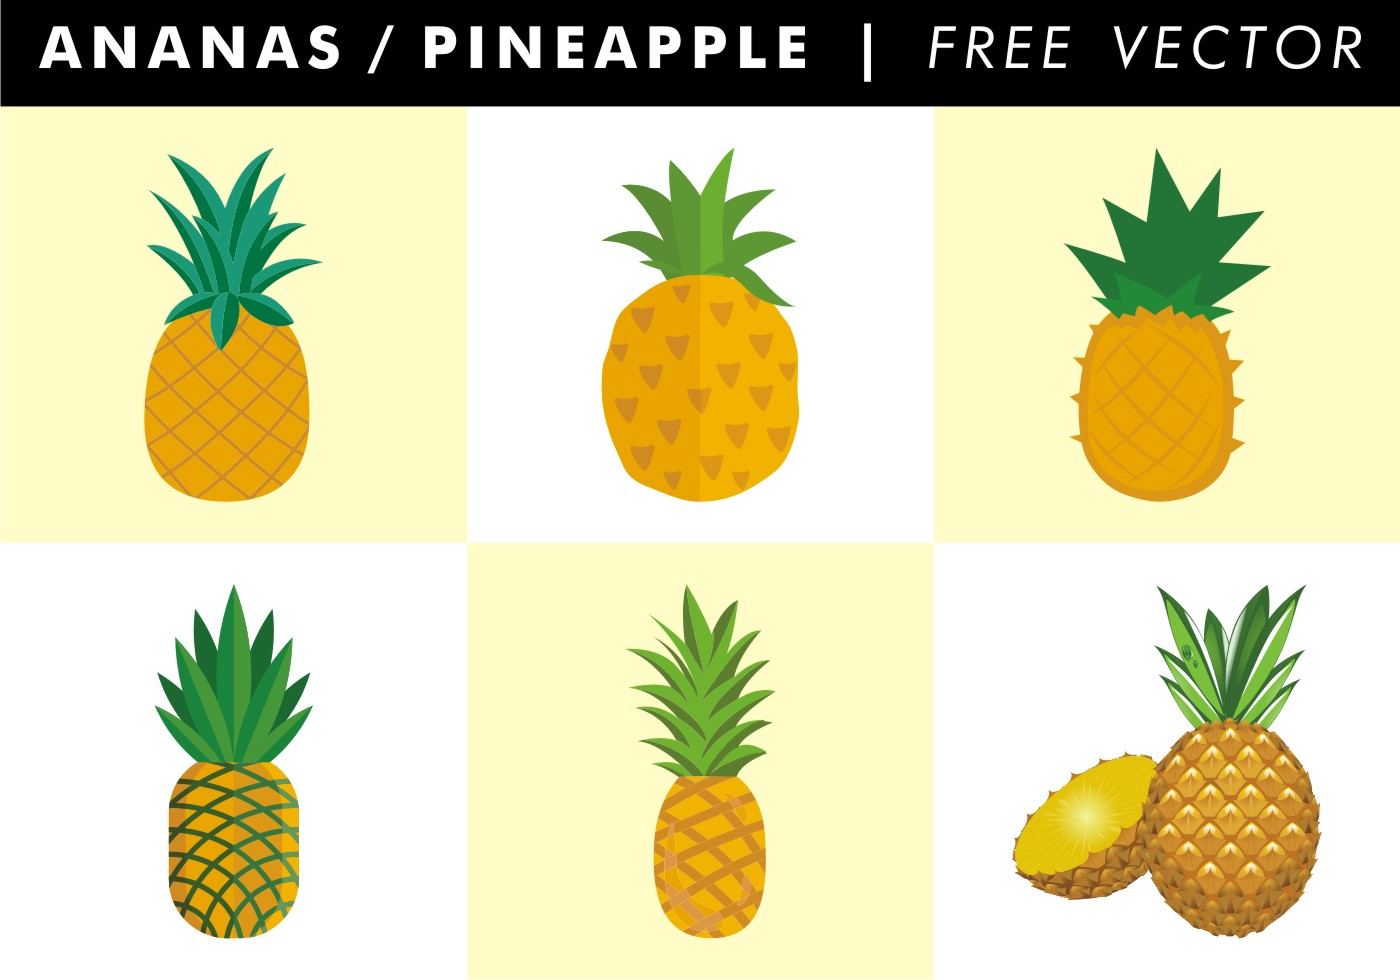 Ananas / Pineapple Free Vector - Download Free Vector Art ...